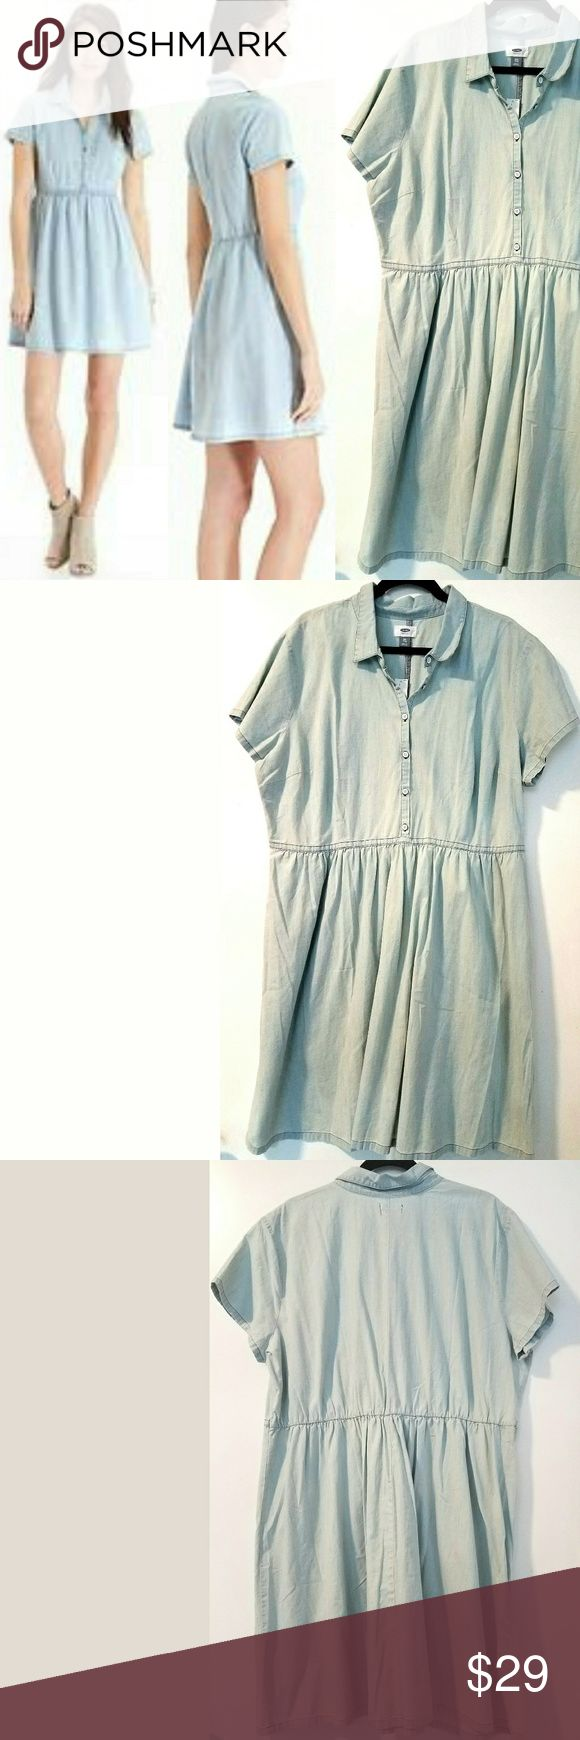 """Old Navy XXL Light Wash Chambray Shirt Dress NWT This Old Navy XXL Light Wash Chambray Shirt Dress is NEW with Tag. Bust measures 25"""" across laying flat measured from pit to pit so 50"""" around. No stretch. 100% cotton. 39.5"""" Long. NEW! ::: Bundle and save! ::: No trades. ::: Model pics from OldNavy.com Old Navy Dresses"""